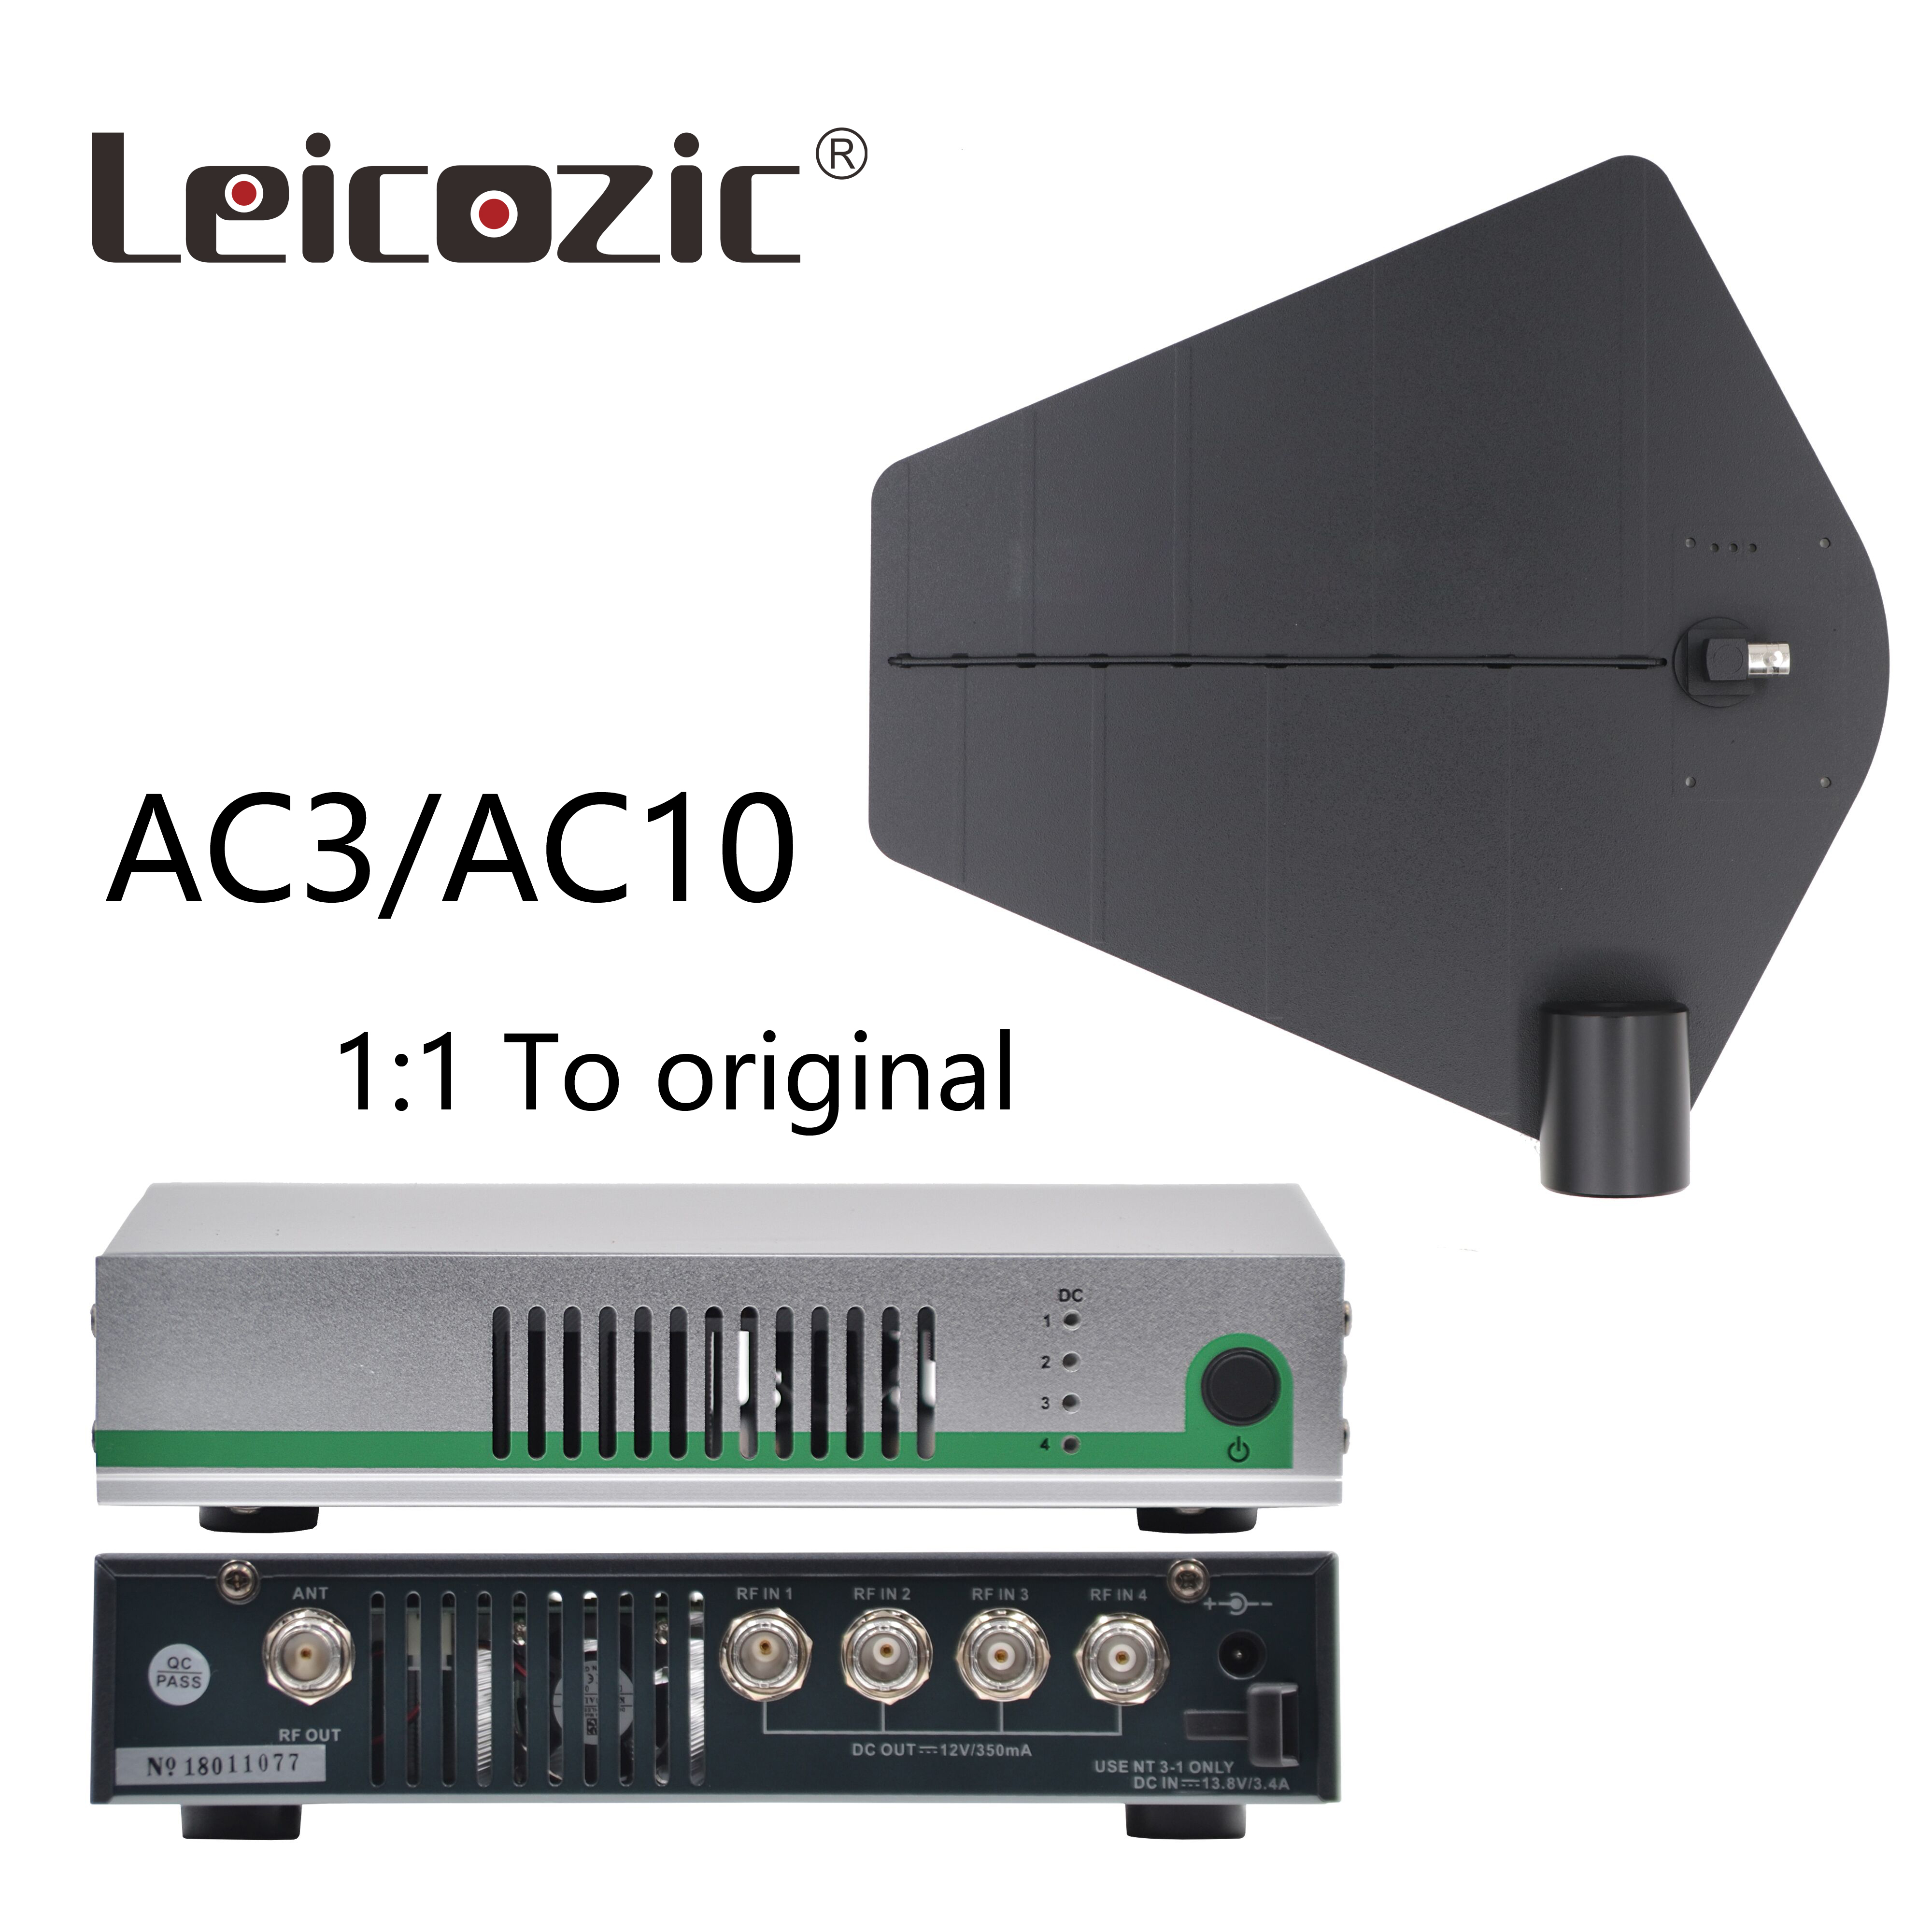 Leicozic AC3 Antenna Combiner & Paddles / AC10 Distribution Amplifier + Active Combiner 450-960Mhz For In Ear Monitor System